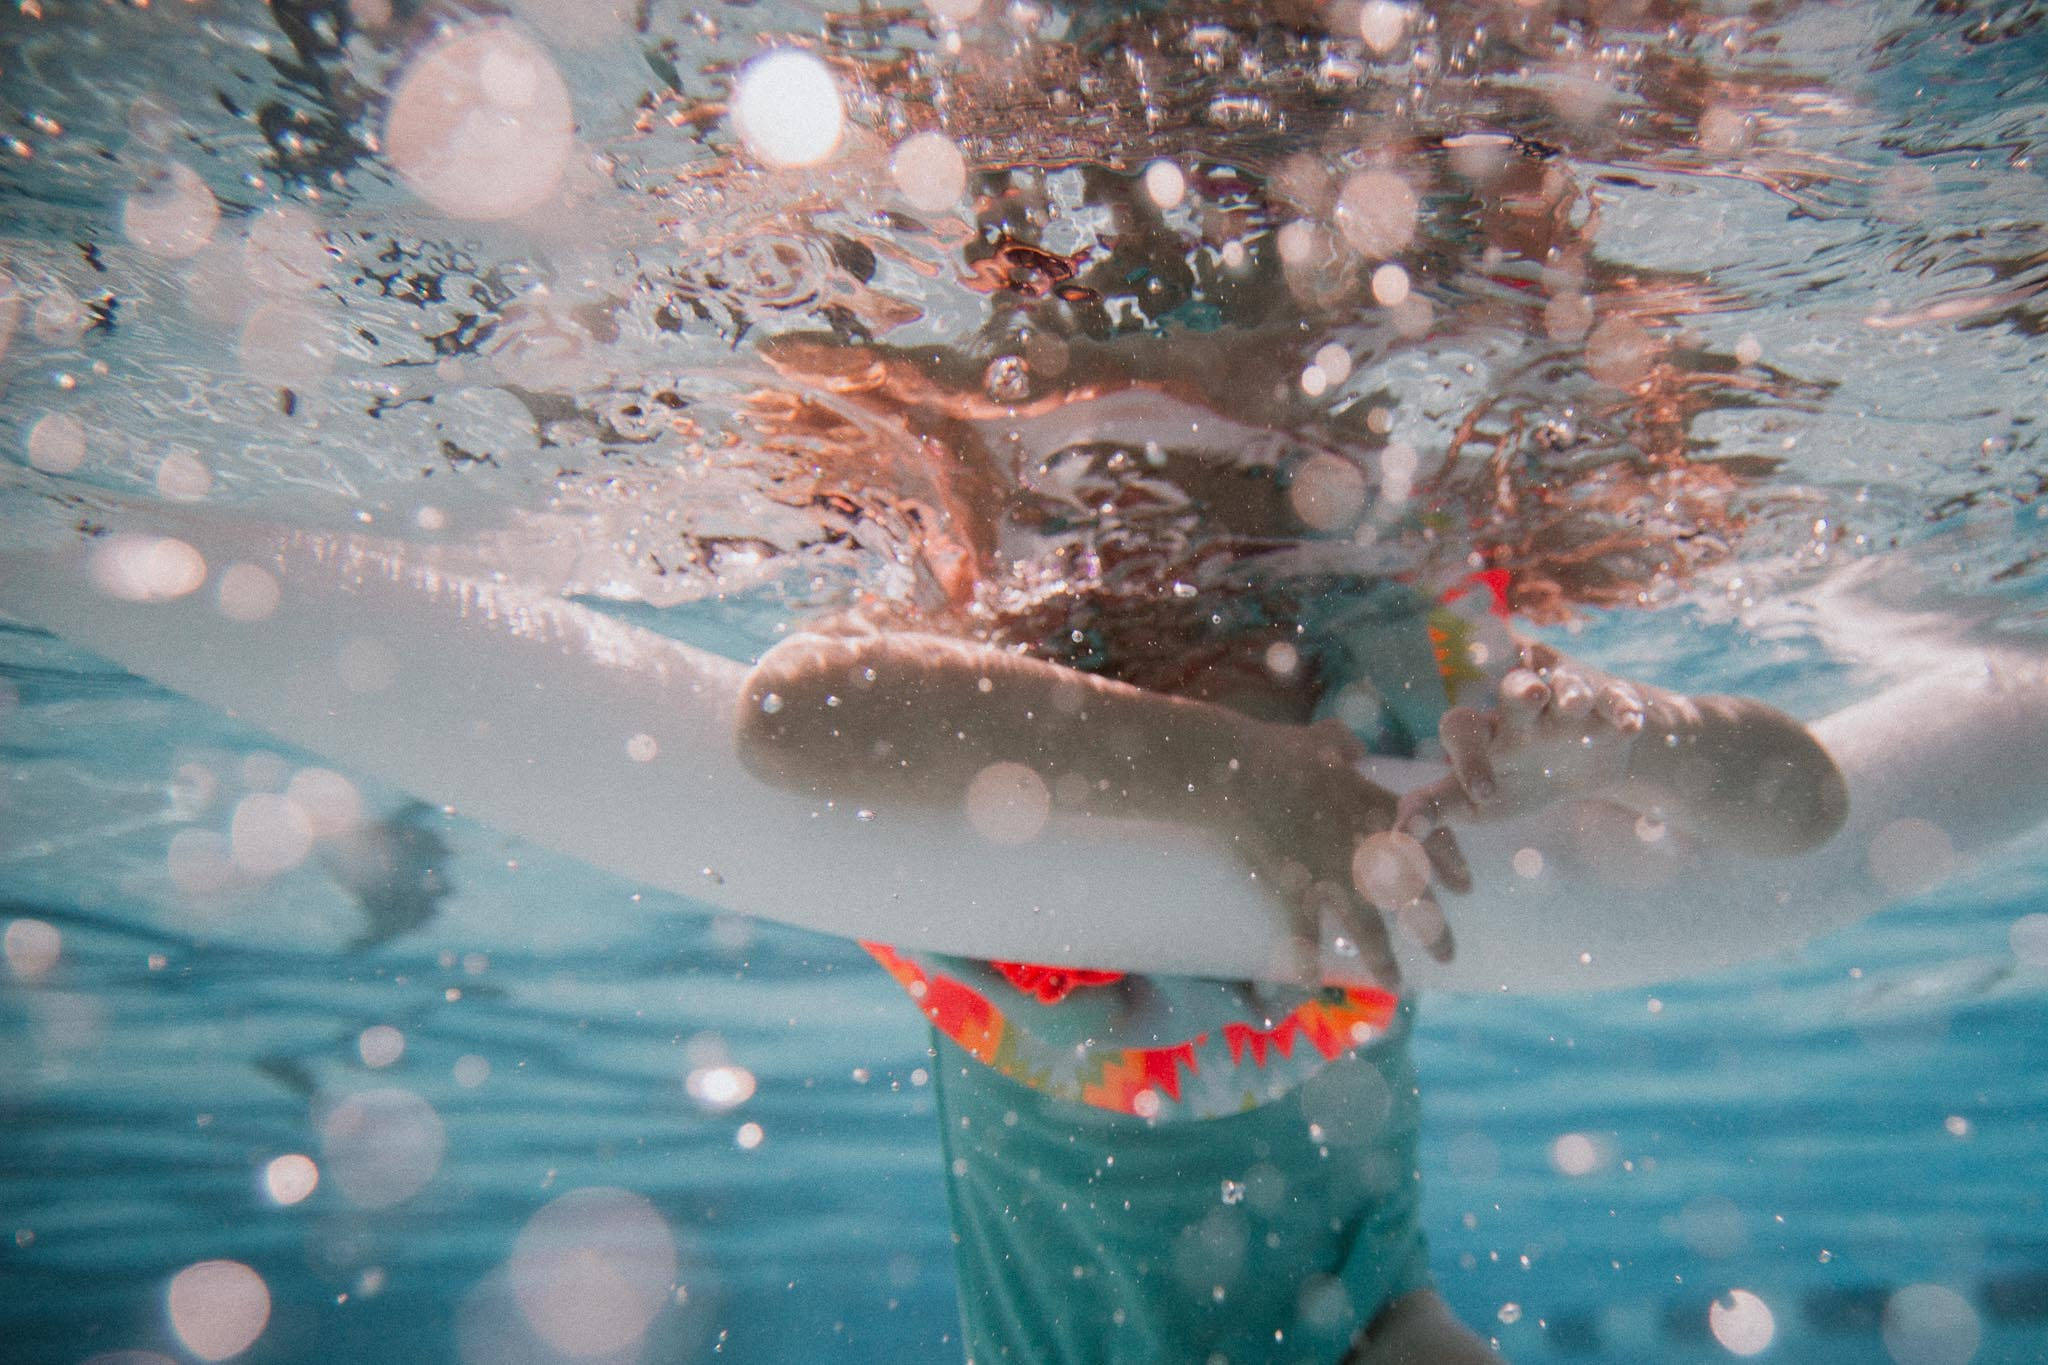 Underwater image of a girl holding onto a pool noodle in Ashburn, VA